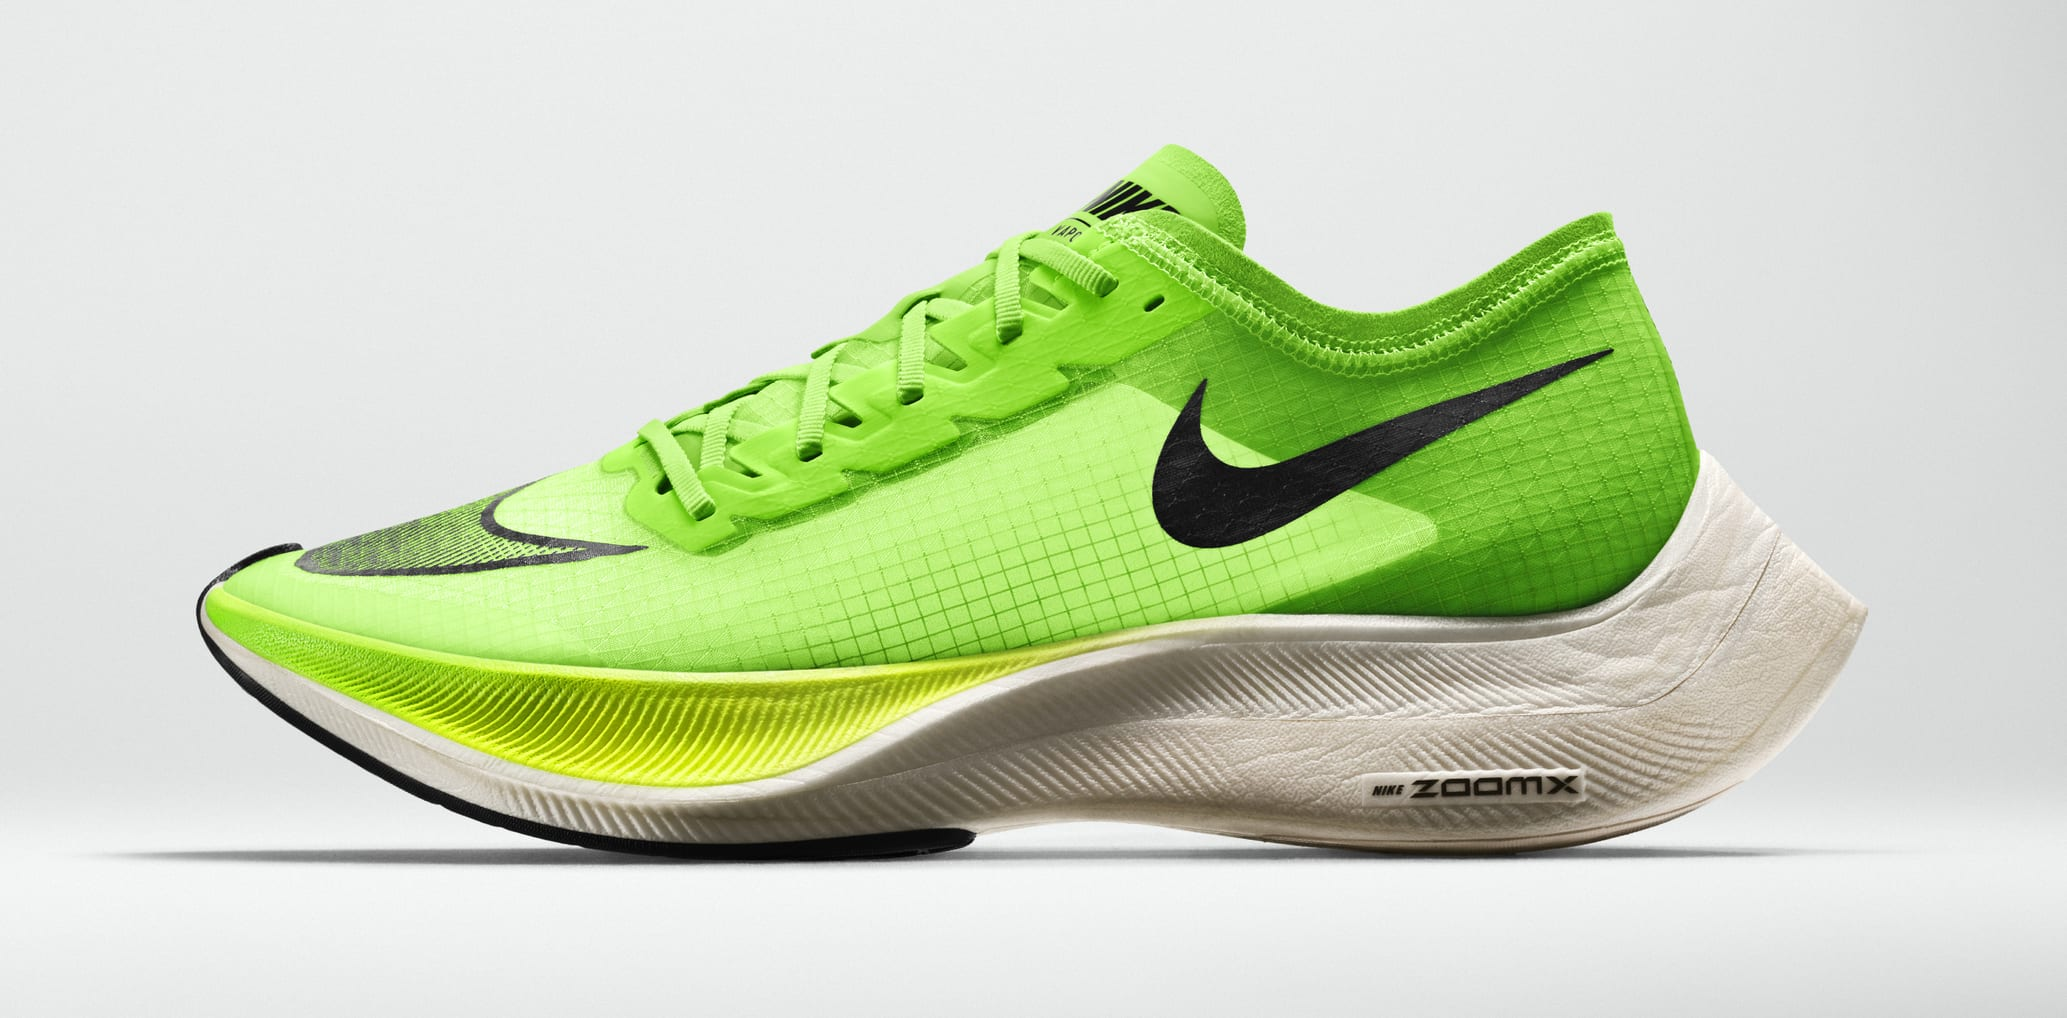 Nike ZoomX VaporFly Next Percent 2